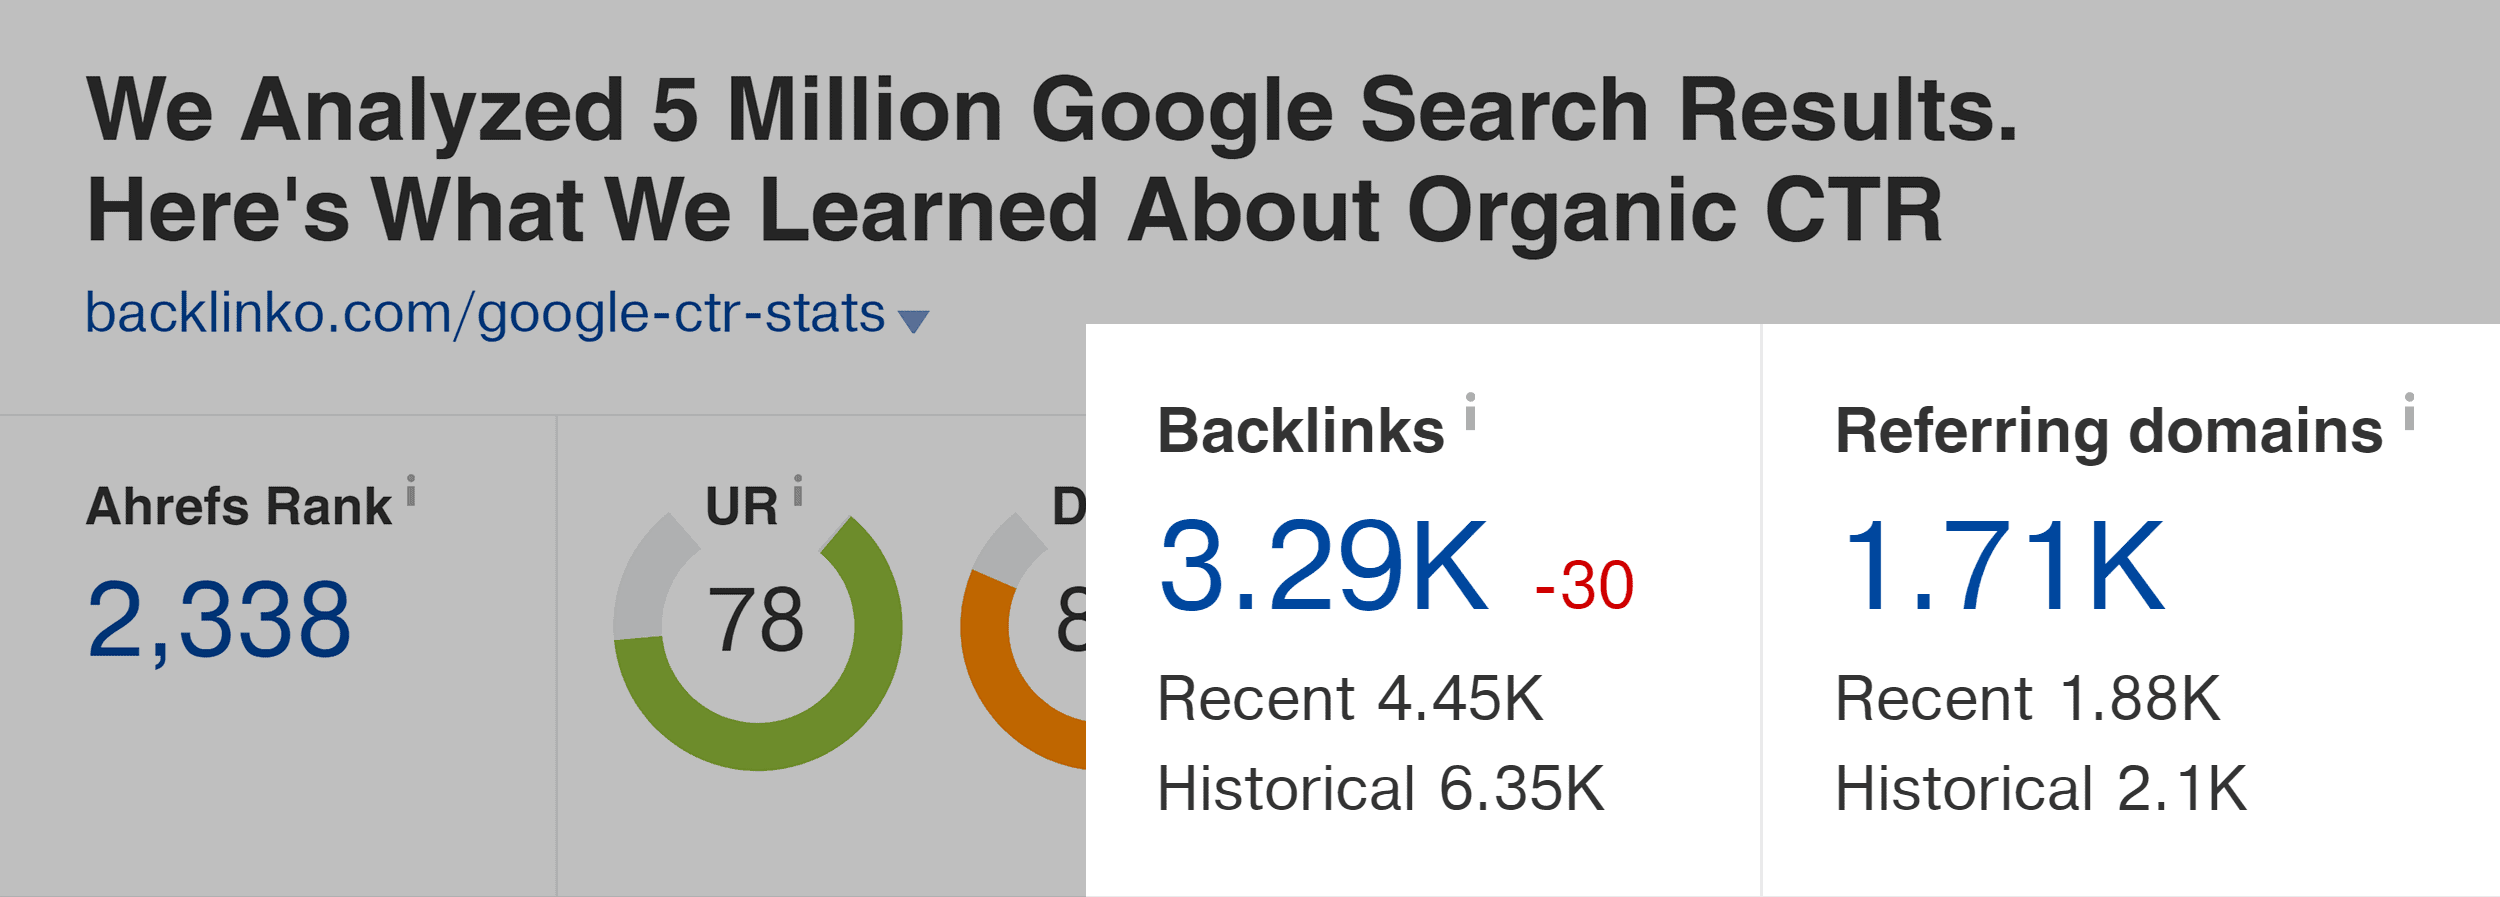 Google CTR stats – Backlinks and referring domains